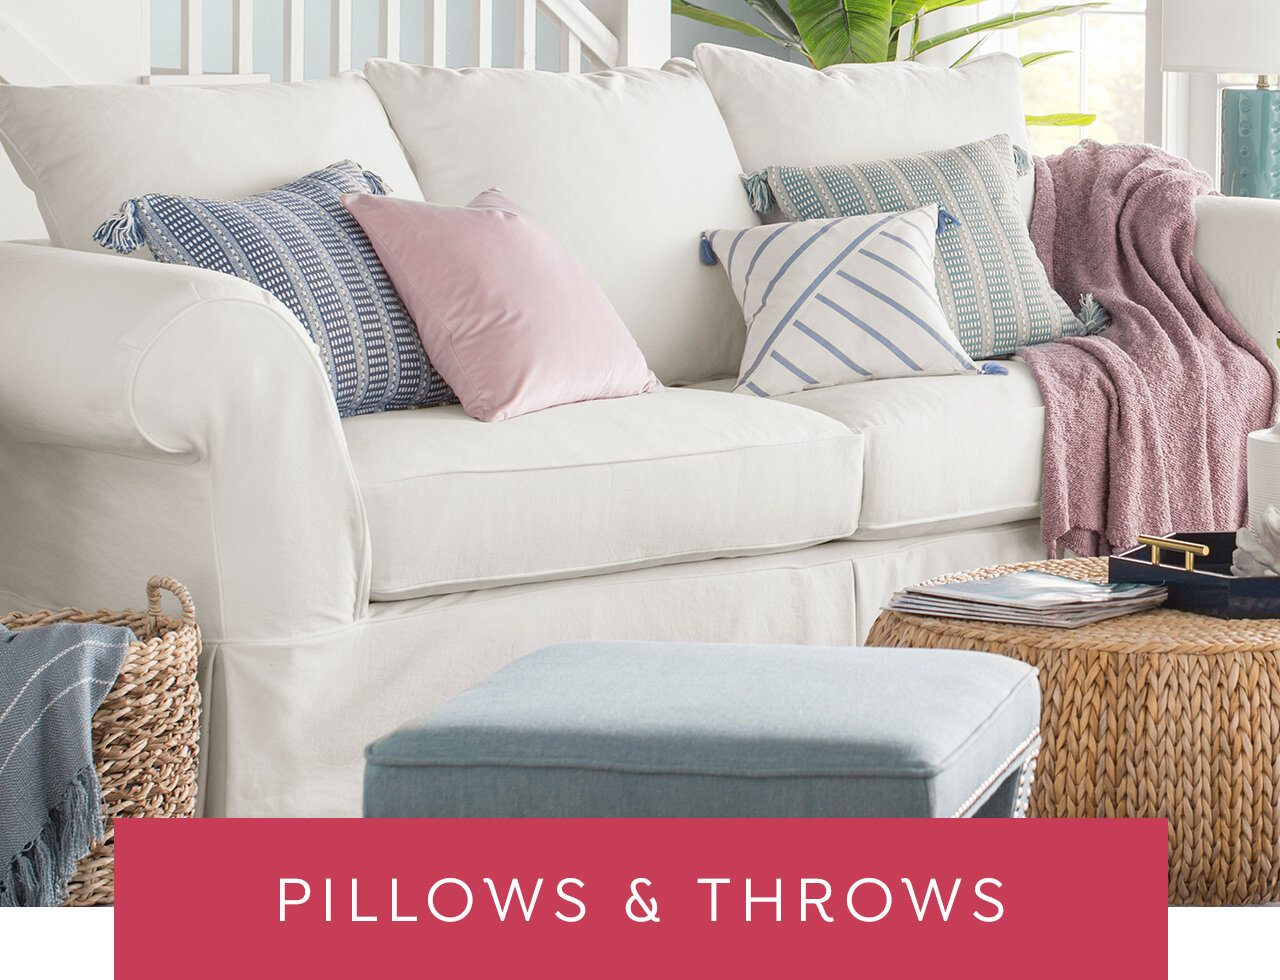 Pillows & Throws